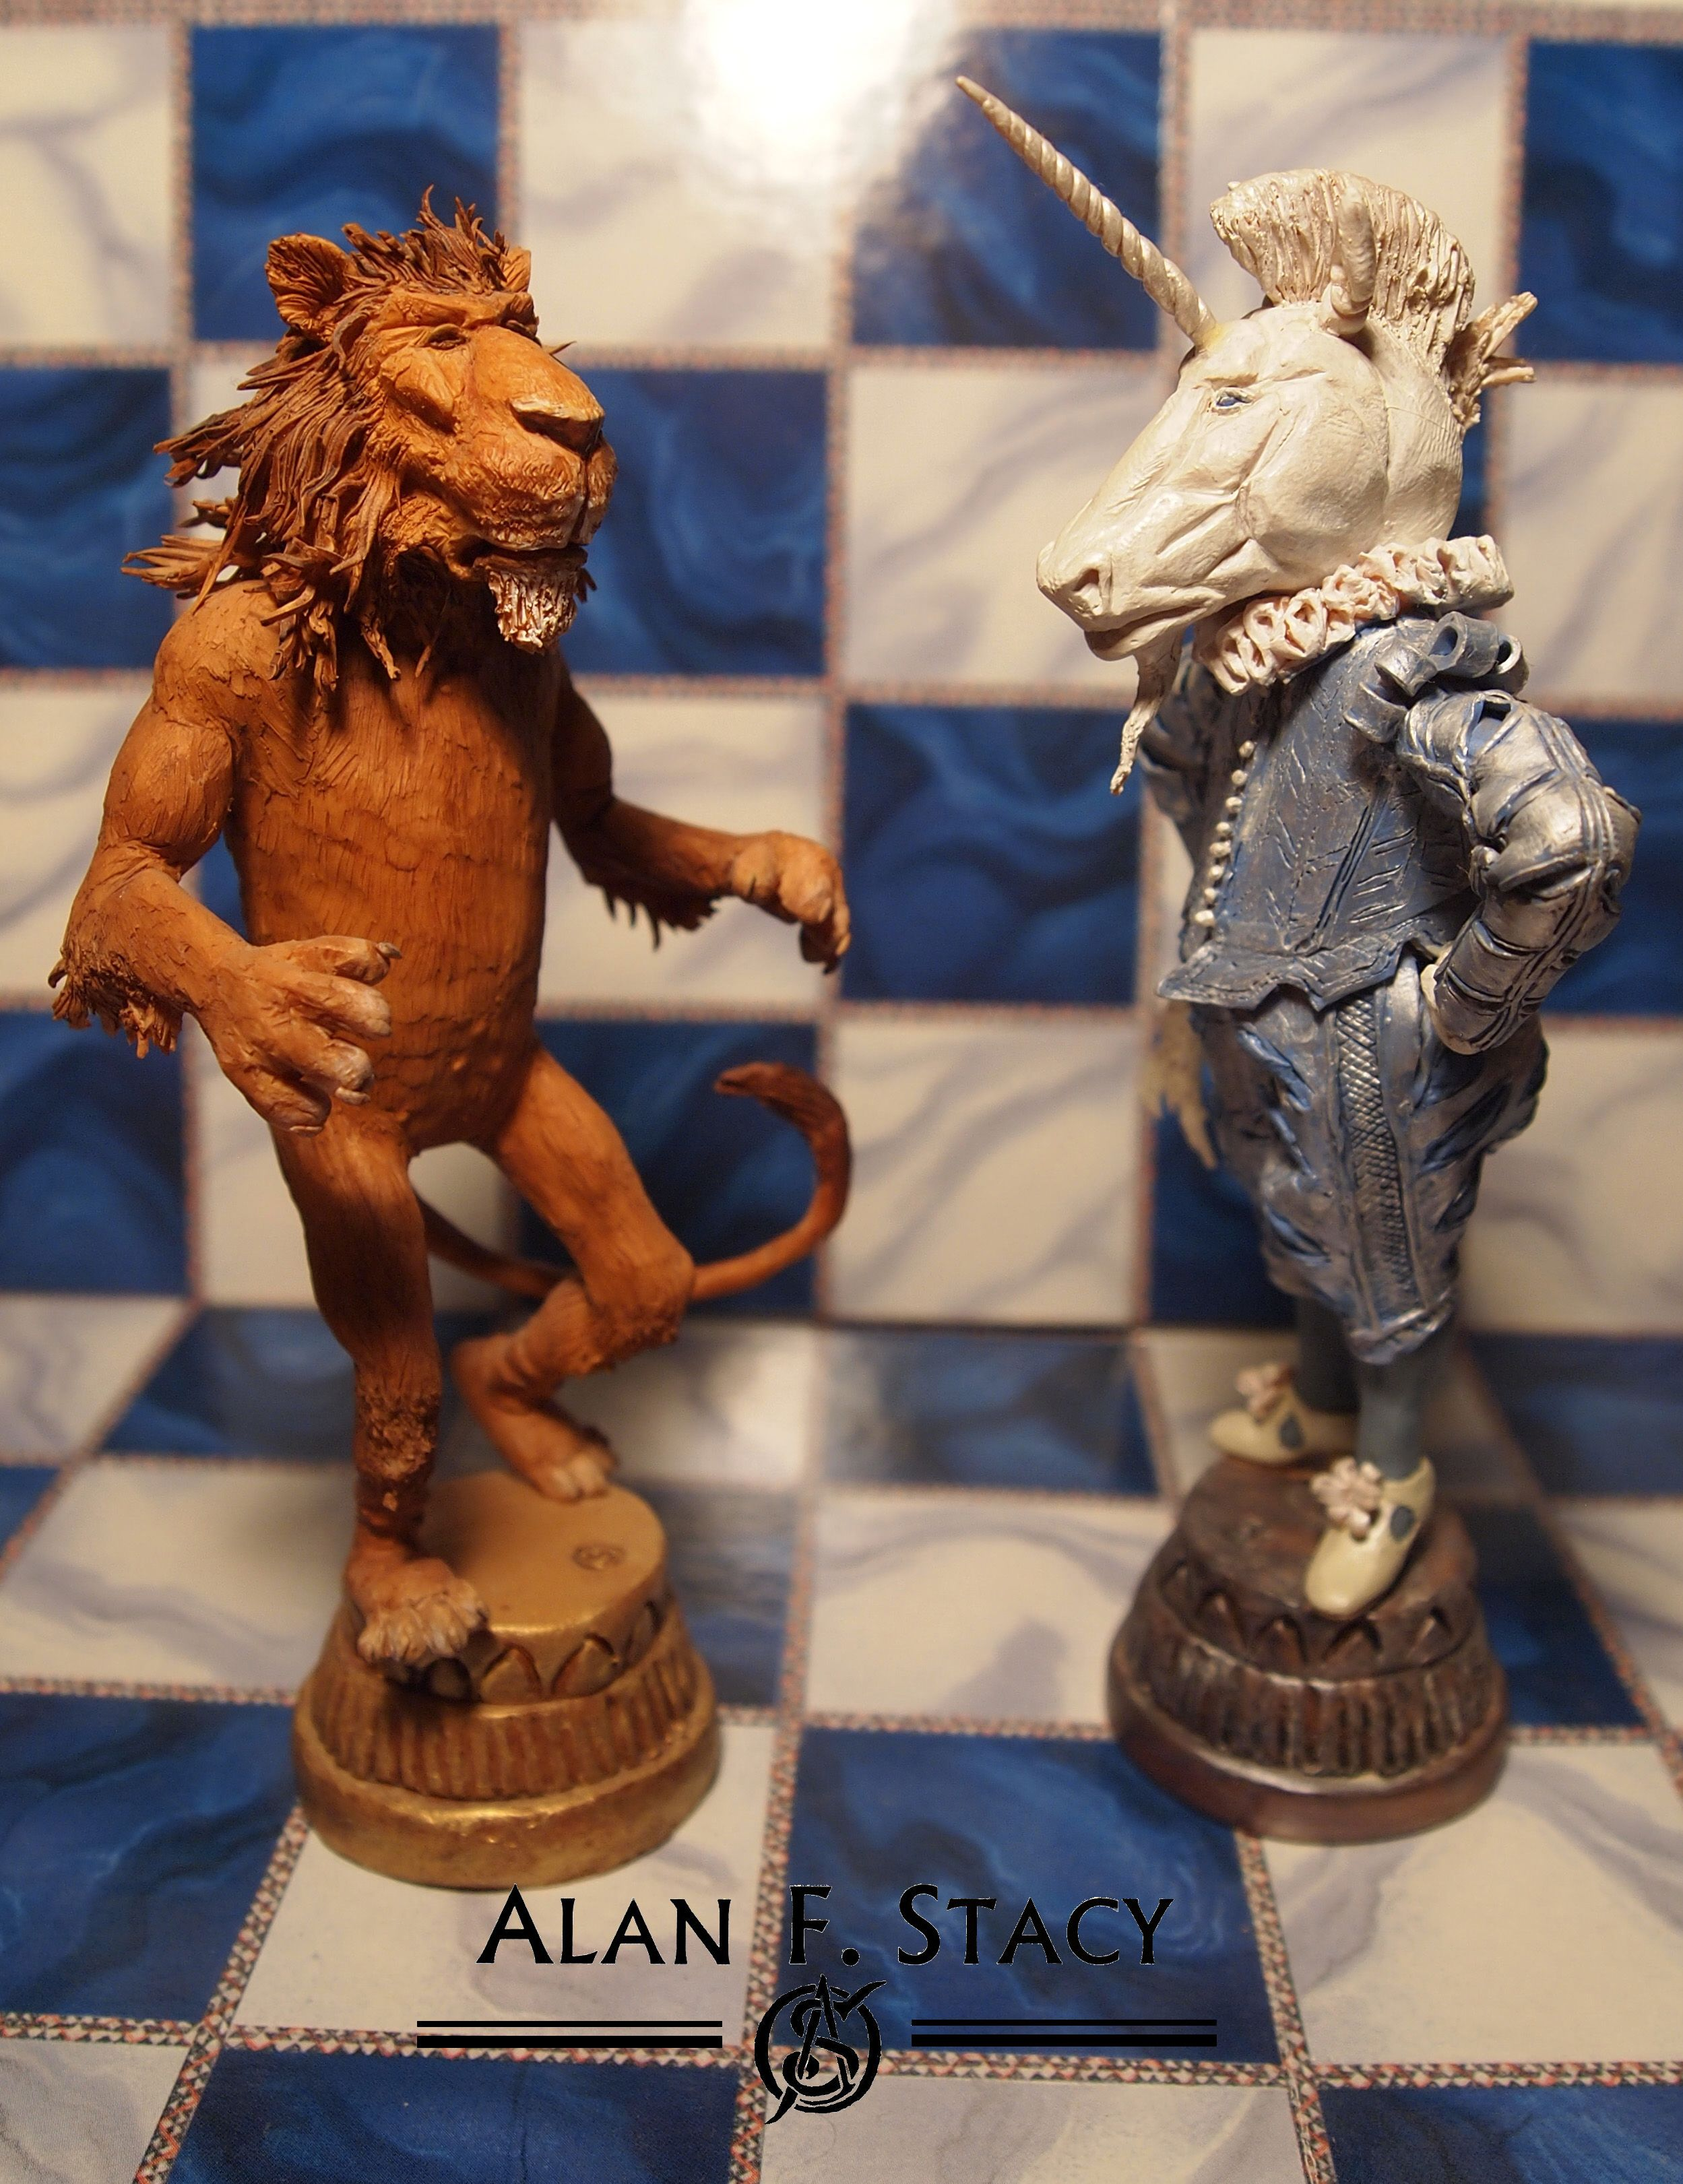 """The Lion and the Unicorn"" from ""Through the Looking Glass"" by Lewis Carroll based on the illustrations by John Tenniel; each figure about 5 inches tall, made from Super Sculpey."